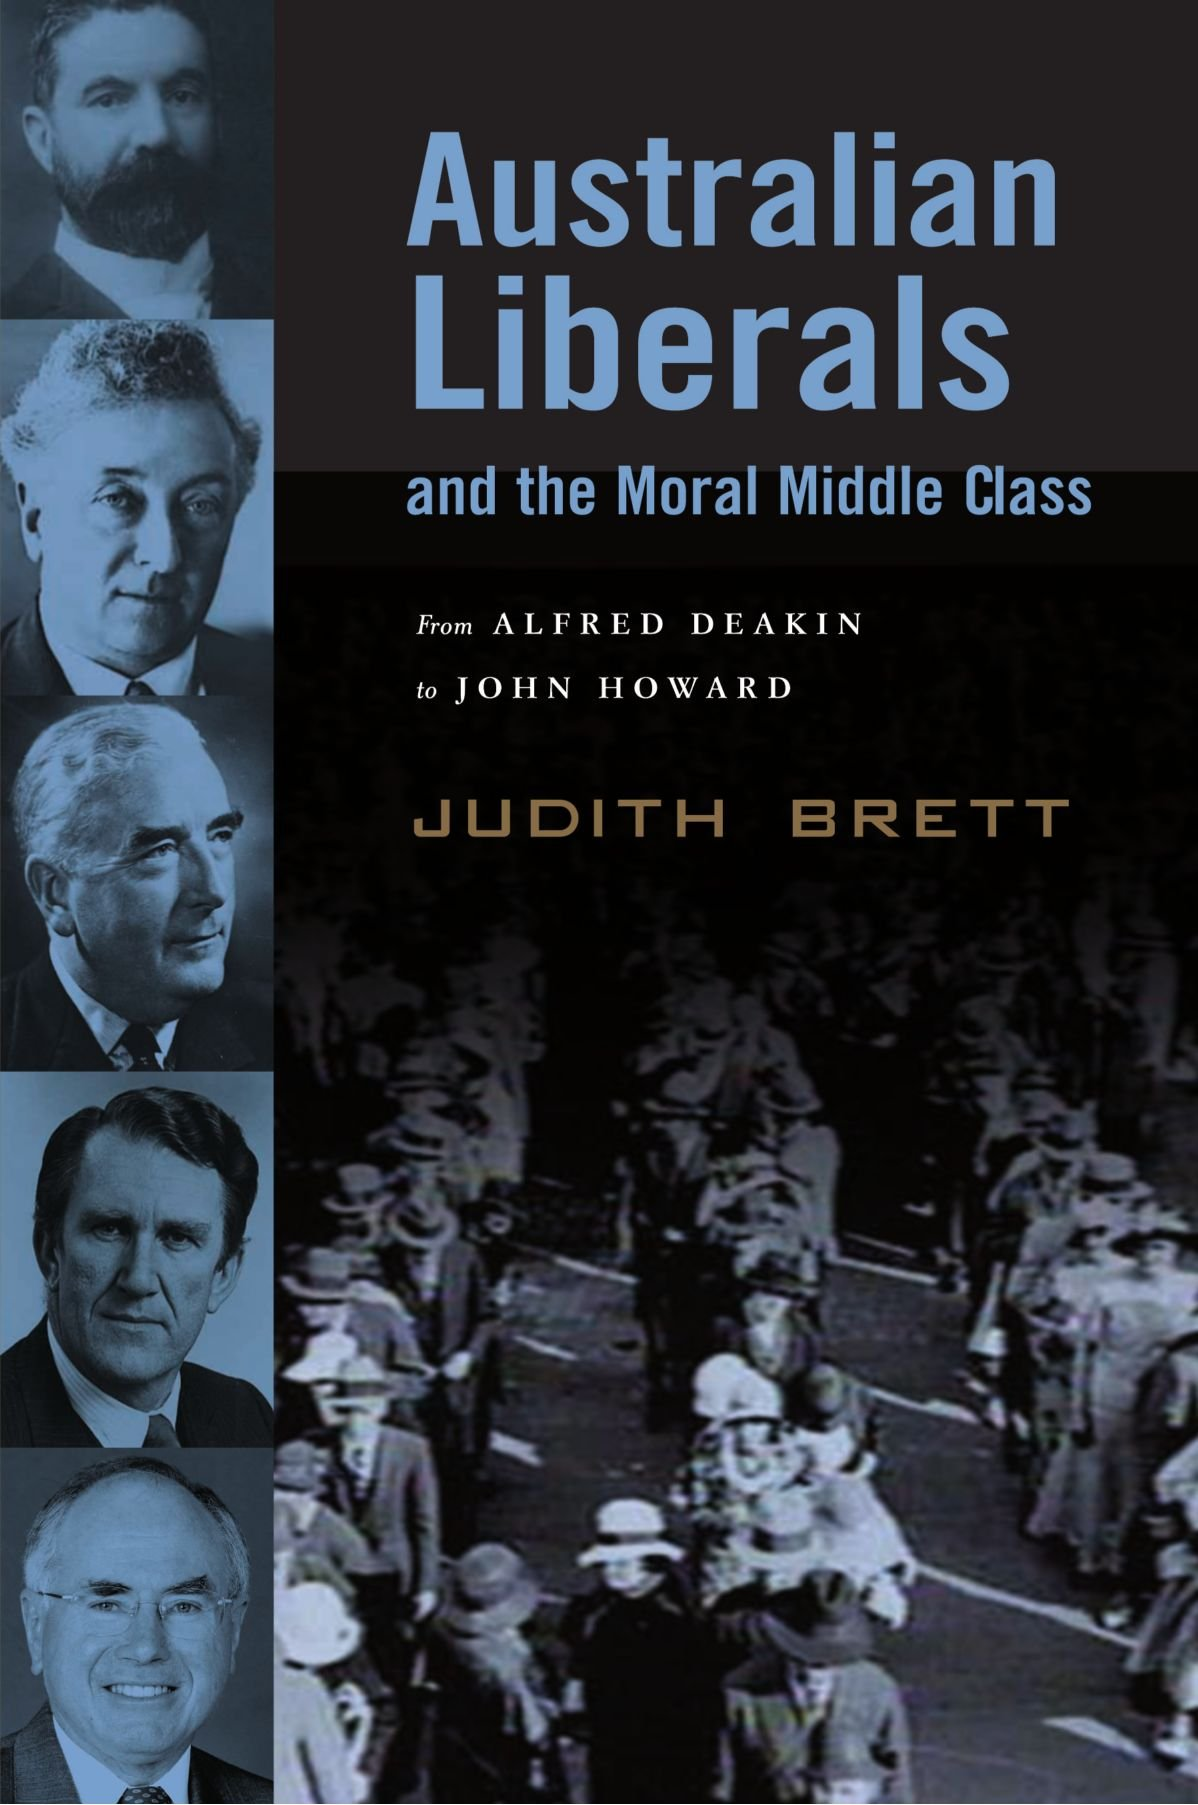 Australian Liberals and the Moral Middle Class: From Alfred Deakin to John Howard free download